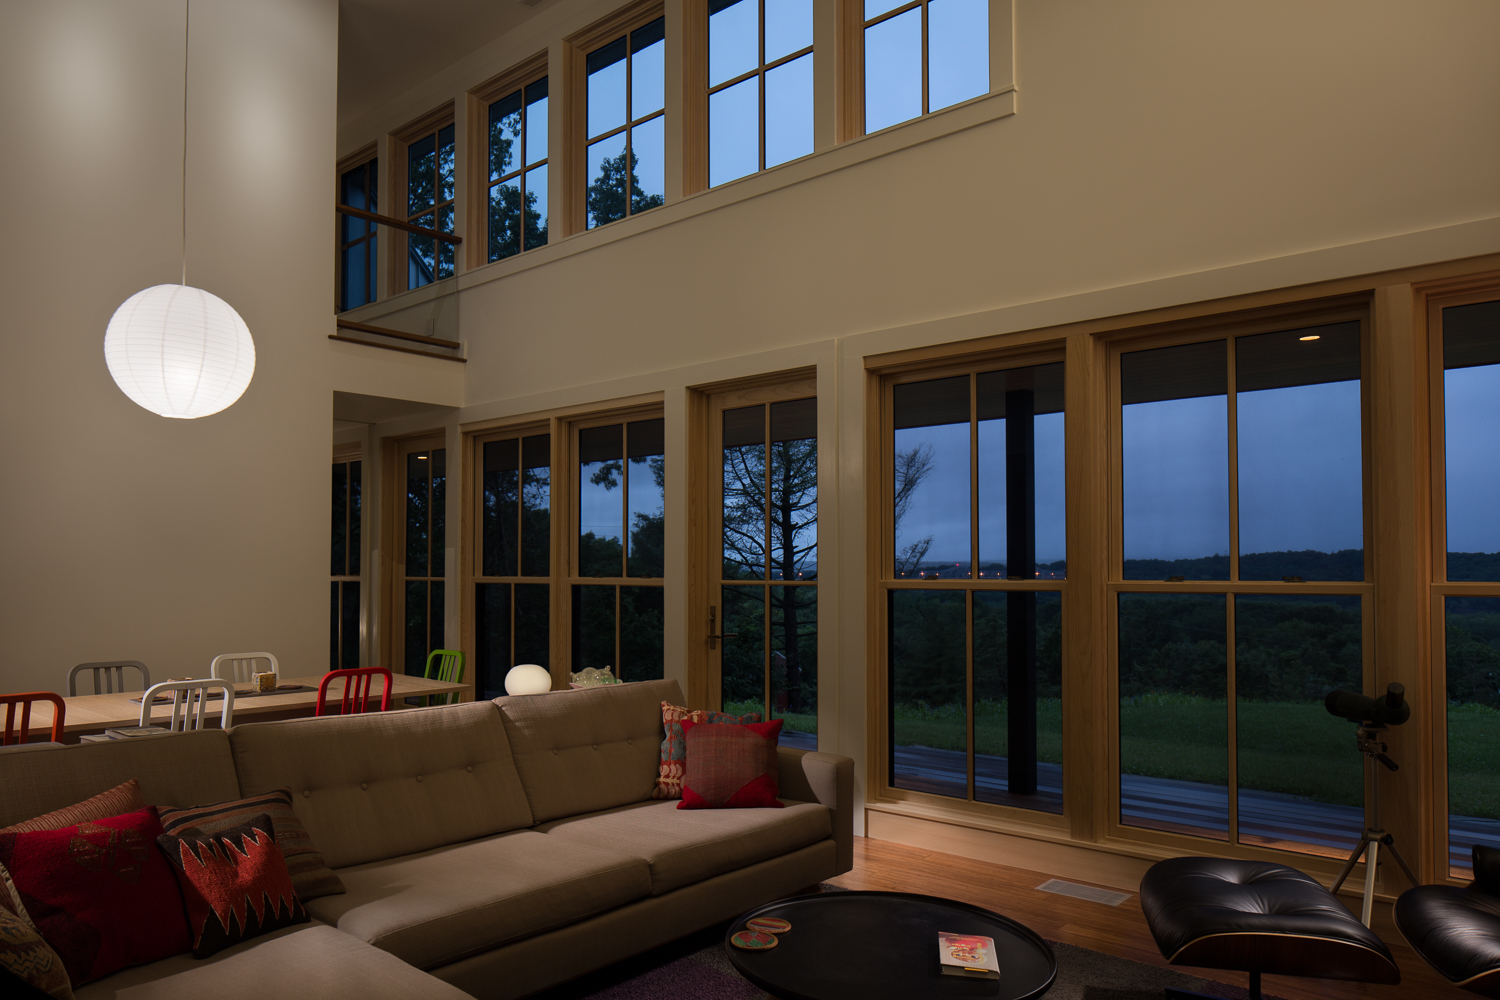 HudsonValleyHome-Twilight Interior.jpg